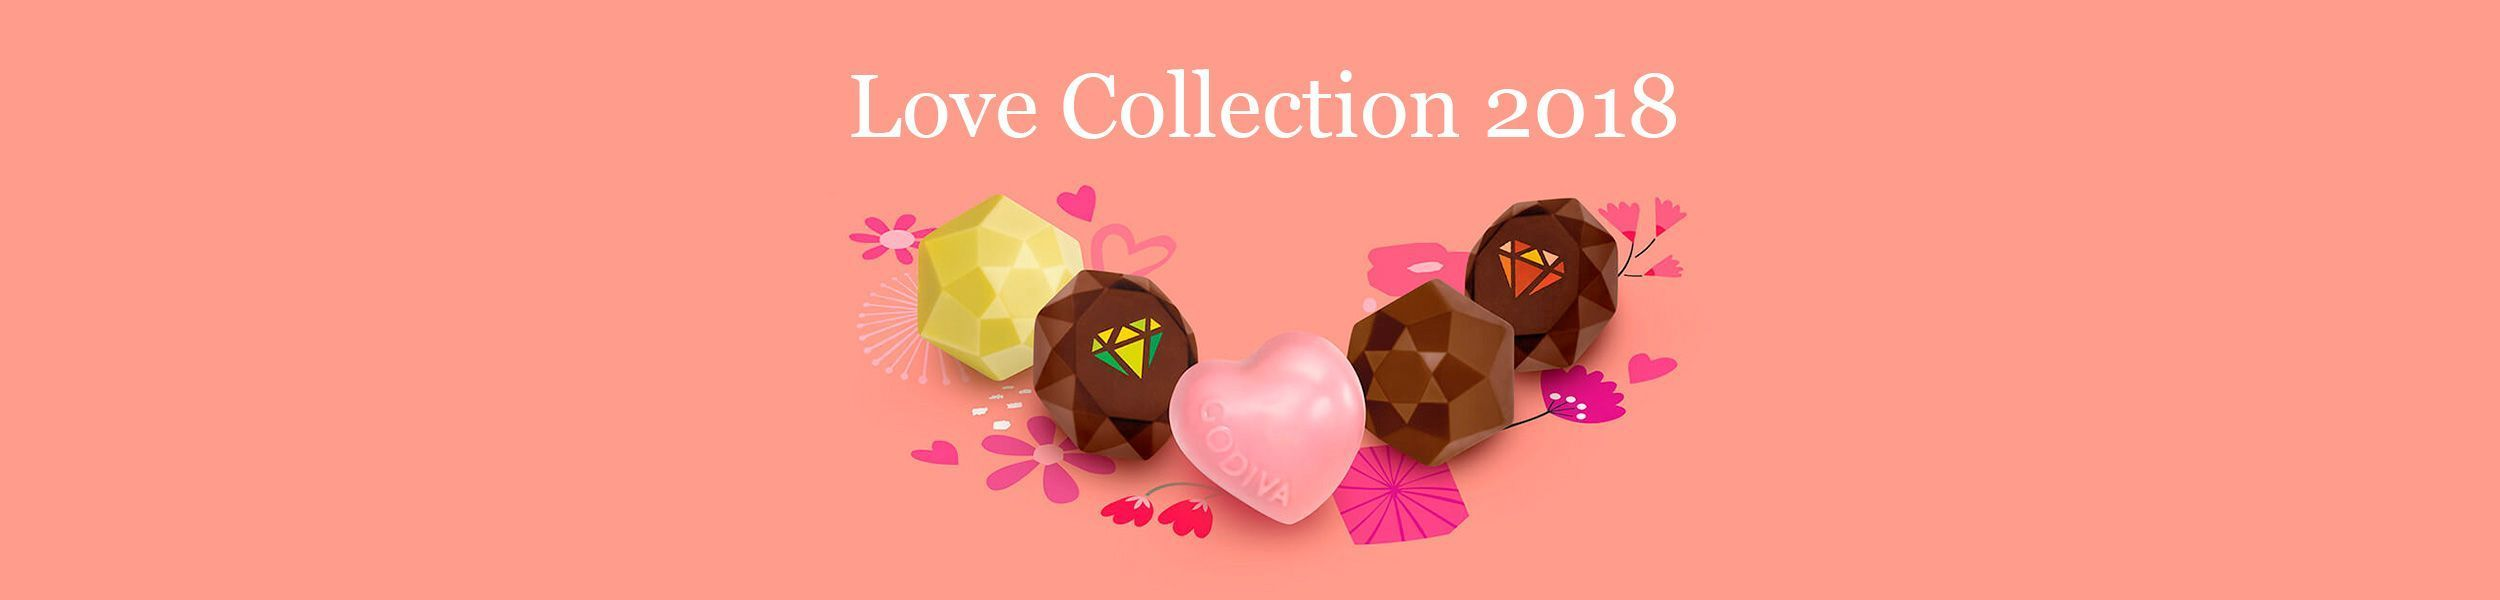 love-collection